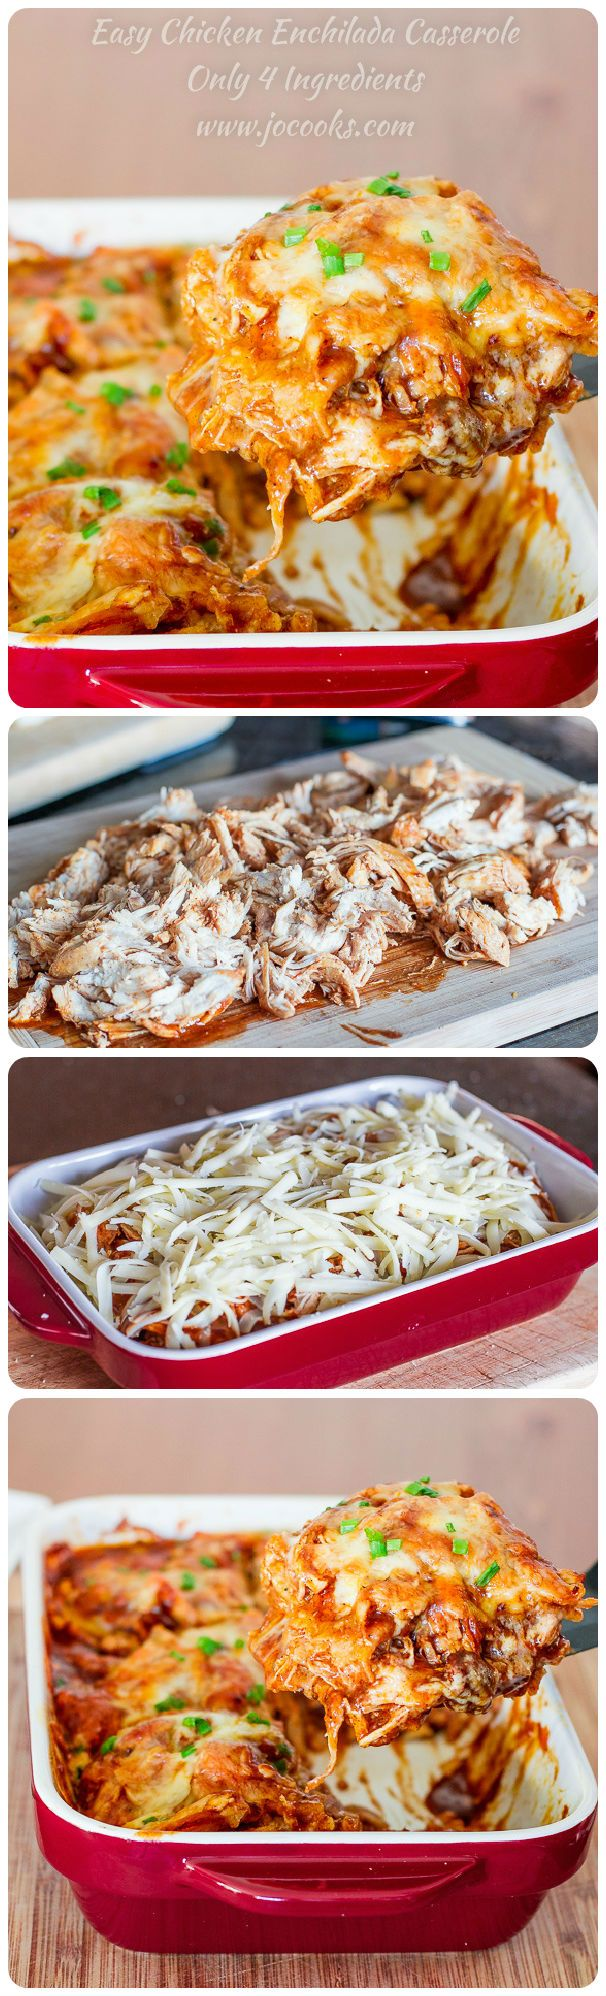 Easy Chicken Enchilada Casserole - only 4 ingredients!